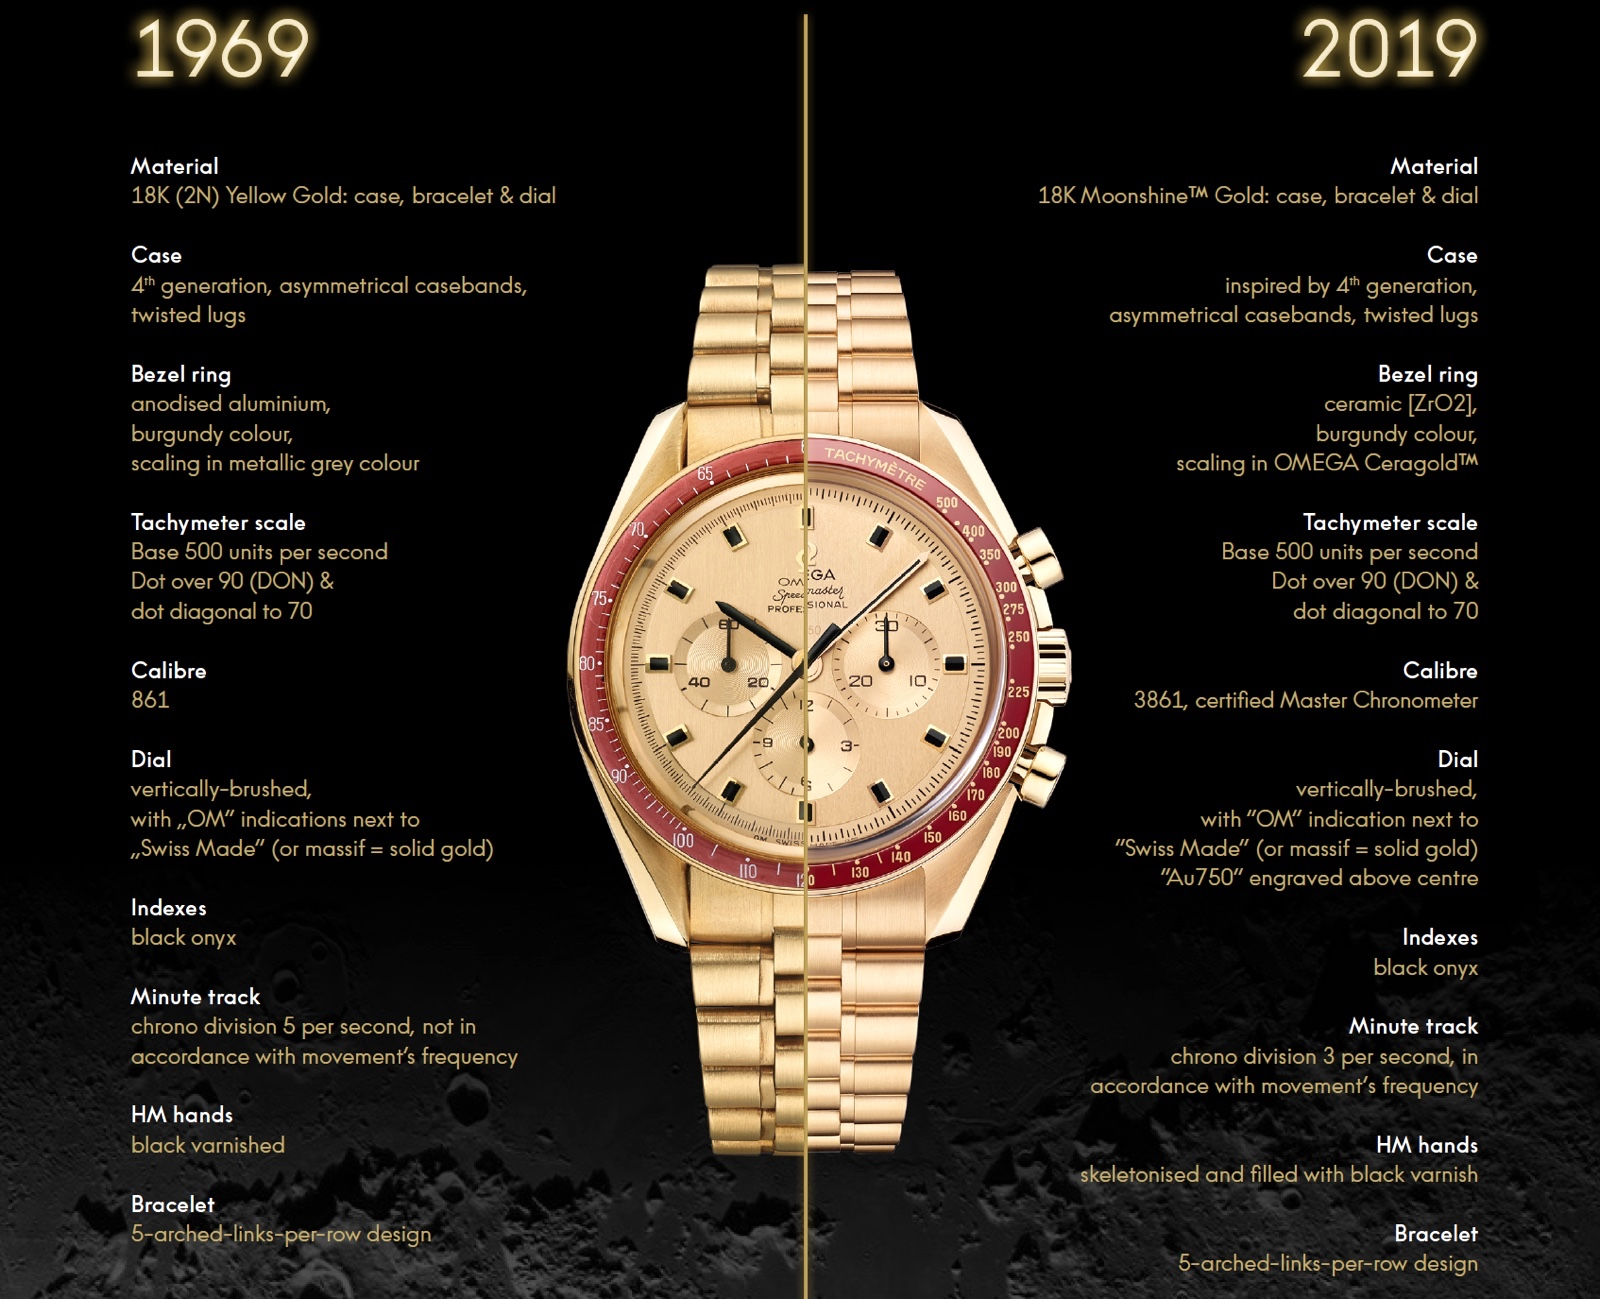 Omega Speedmaster Apollo 11 50th Anniversary 1969 vs 2019